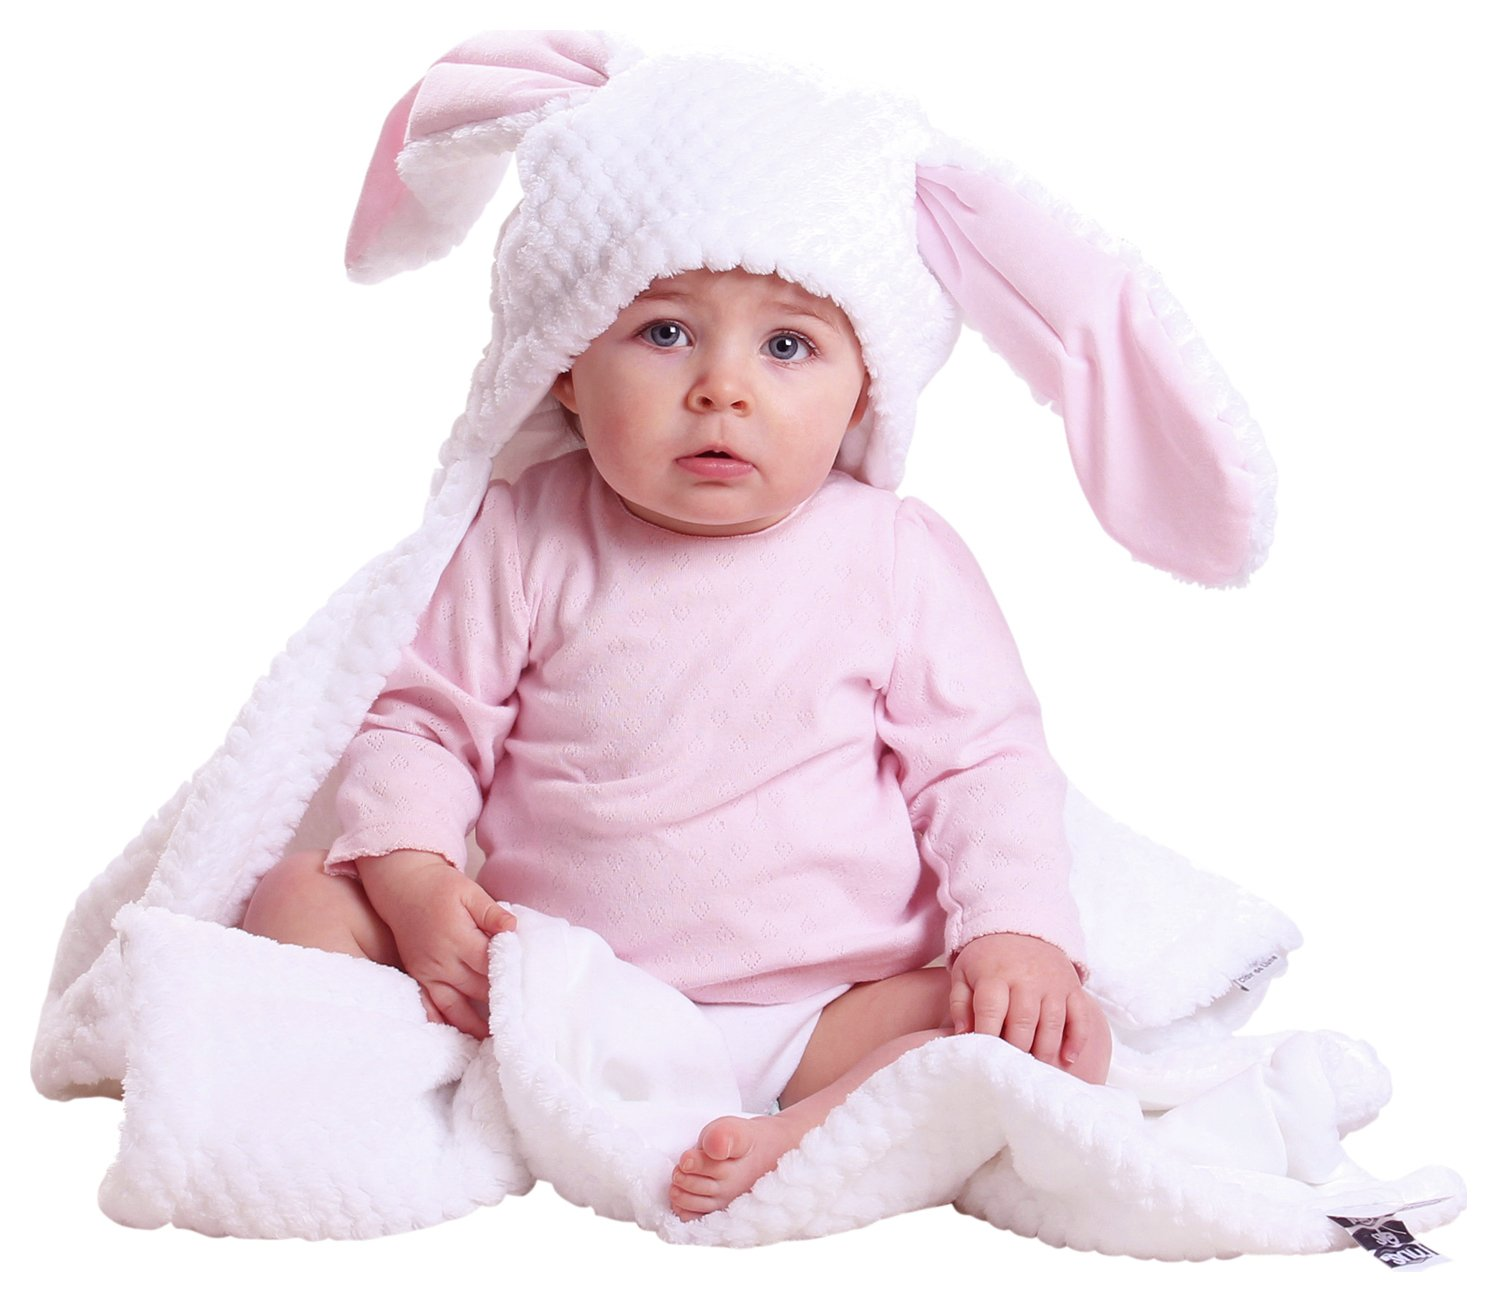 Image of Clair de Lune Honeycomb Hooded Ear Blanket - White/Pink.